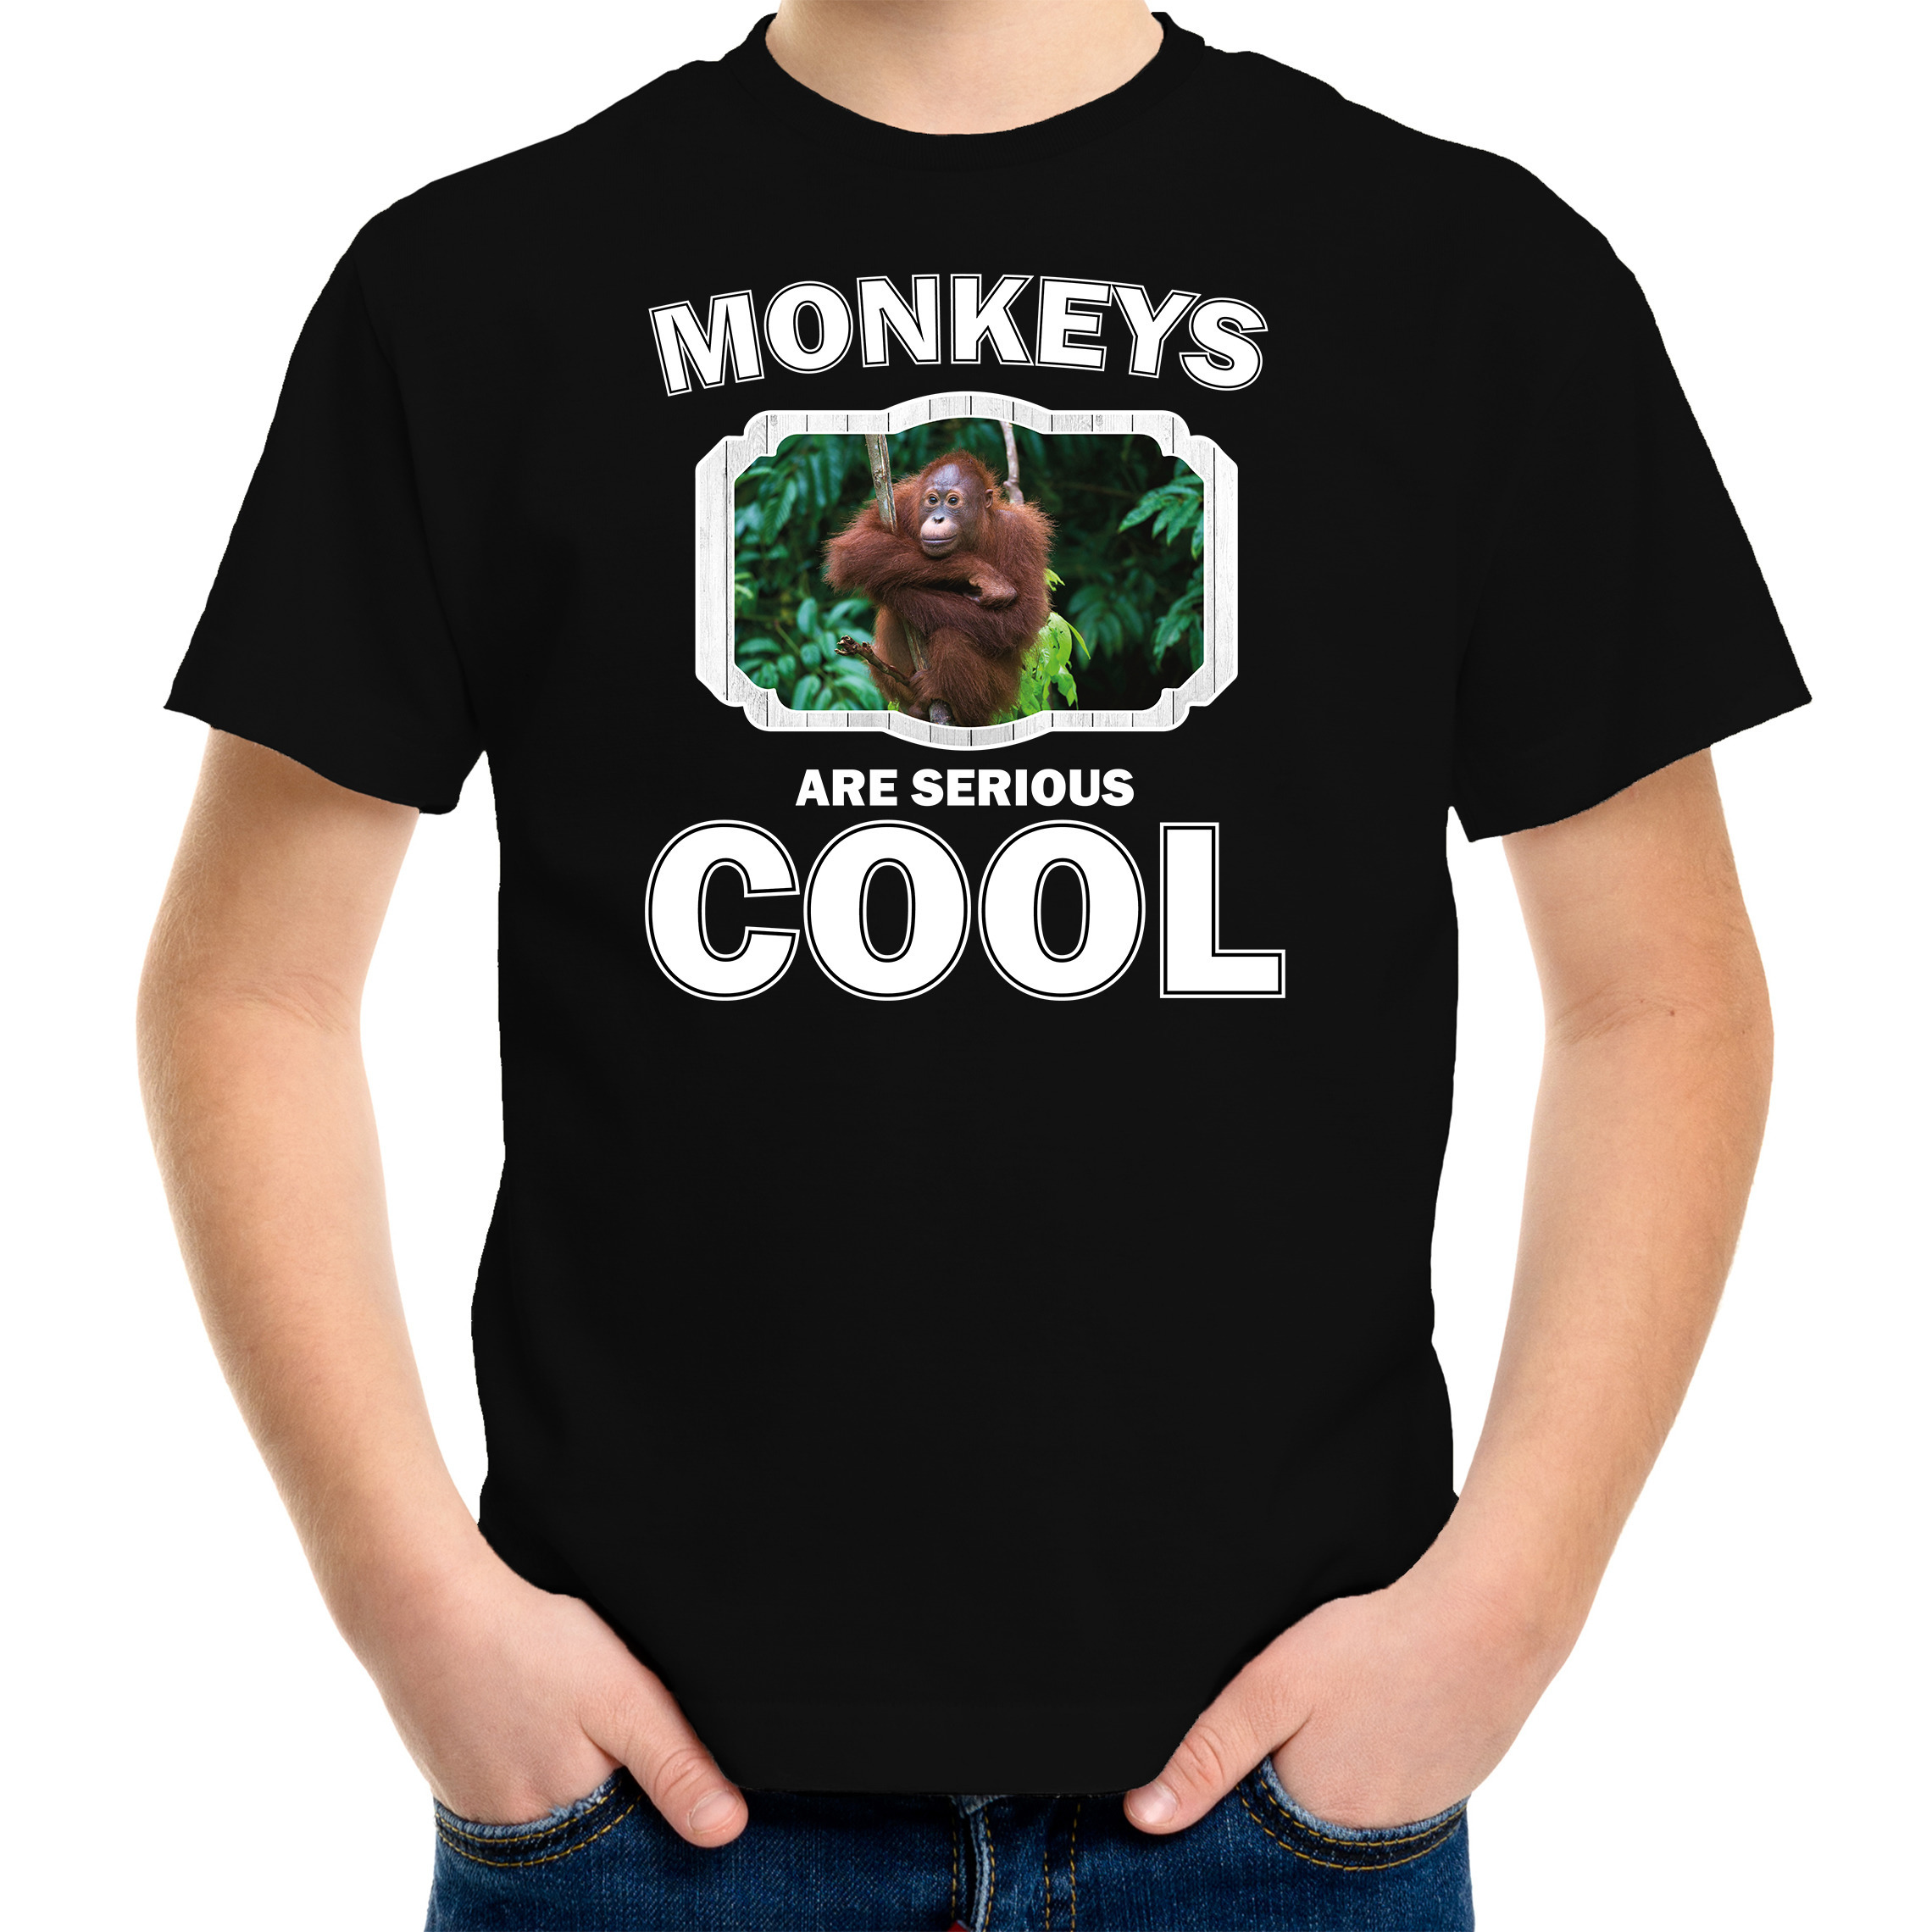 T-shirt monkeys are serious cool zwart kinderen - Apen/ orangoetan shirt